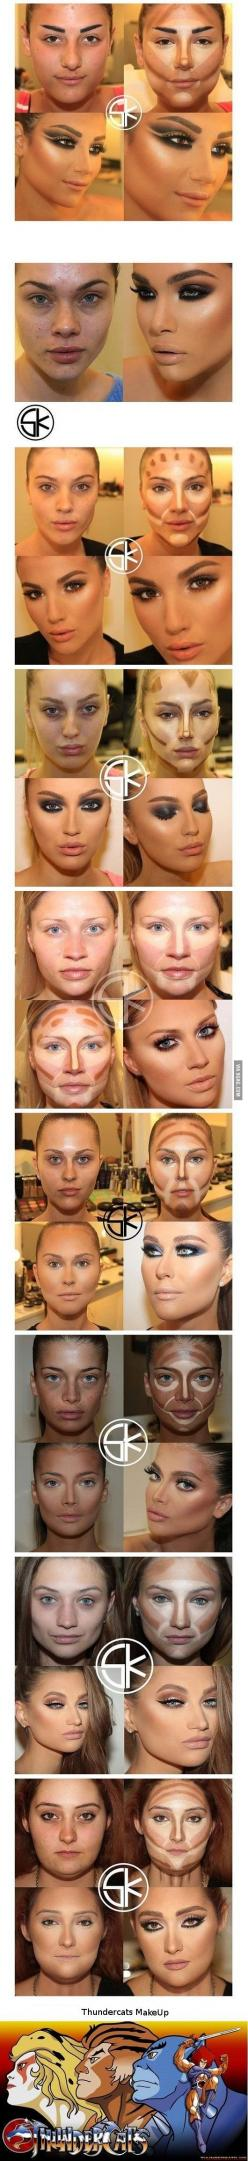 This is actually helpfull makeup tutorial...(just don't go extrem...) If you do, it's nothing but lies, don't forget to take them to the pool.: